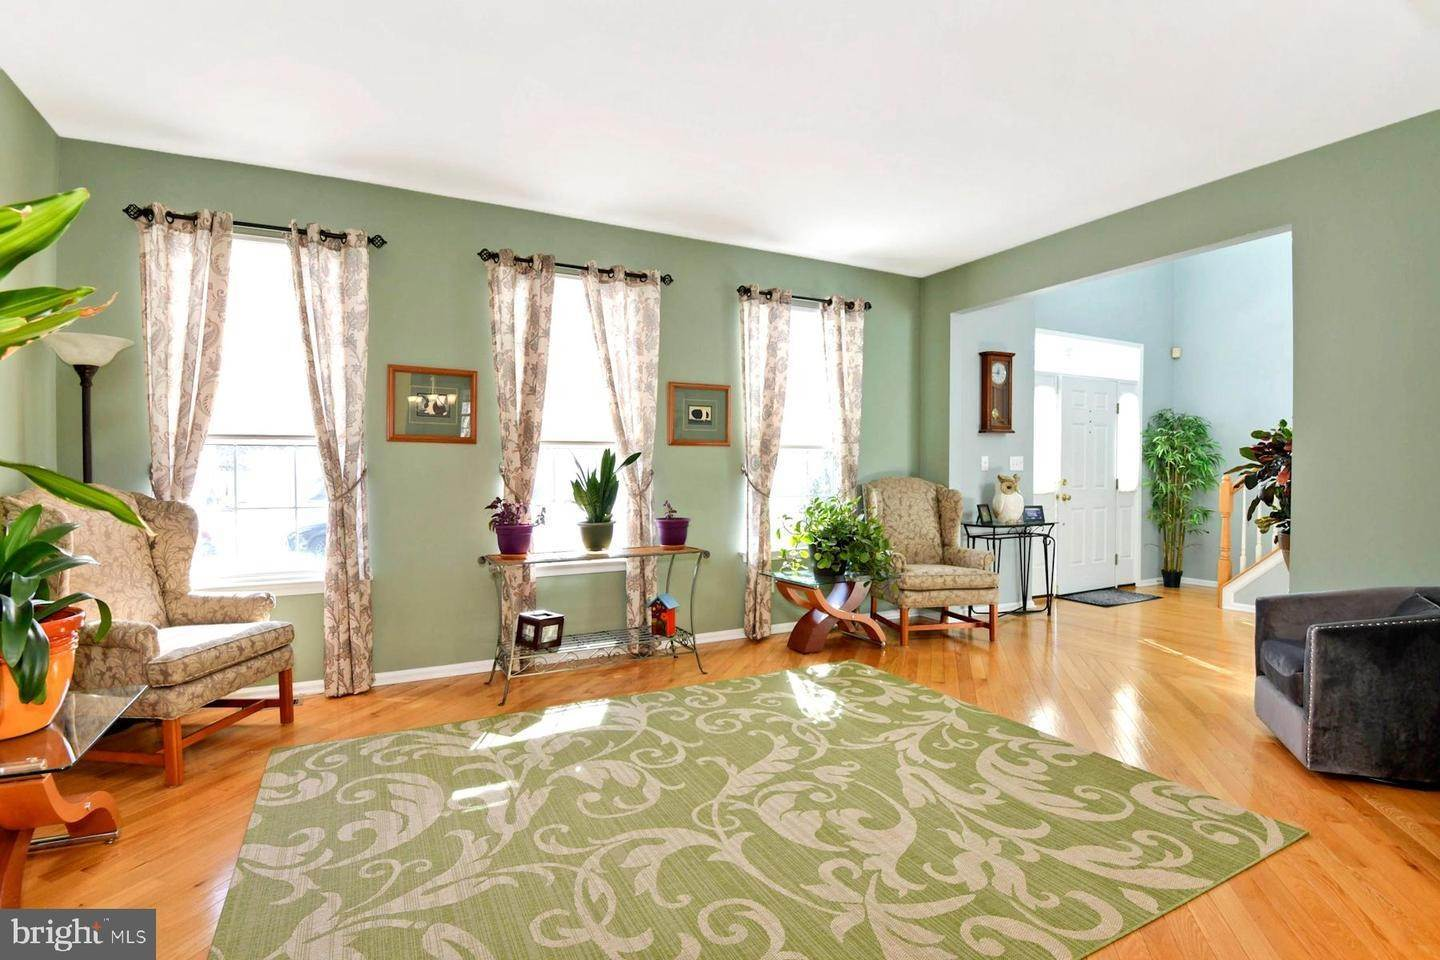 9. Detached House for Sale at 34 OAKMONT TER Hightstown, New Jersey 08520 United States